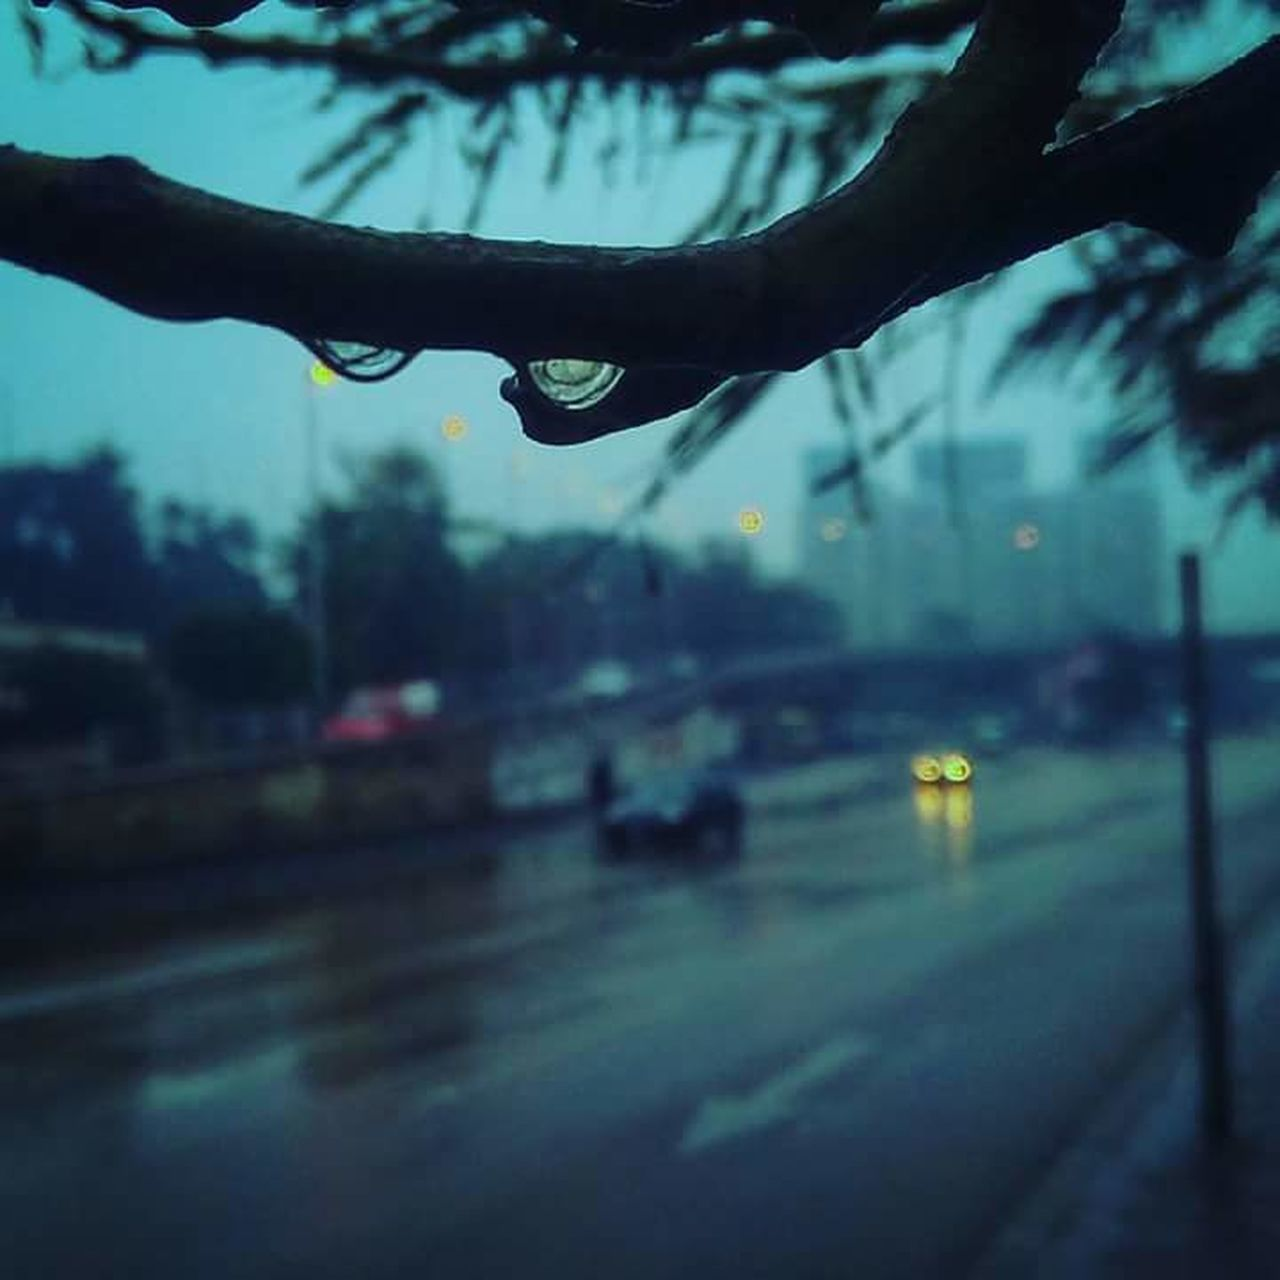 reflection, wet, rain, sky, tree, water, drop, focus on foreground, dusk, transportation, close-up, rainy season, outdoors, city, day, human body part, nature, human hand, people